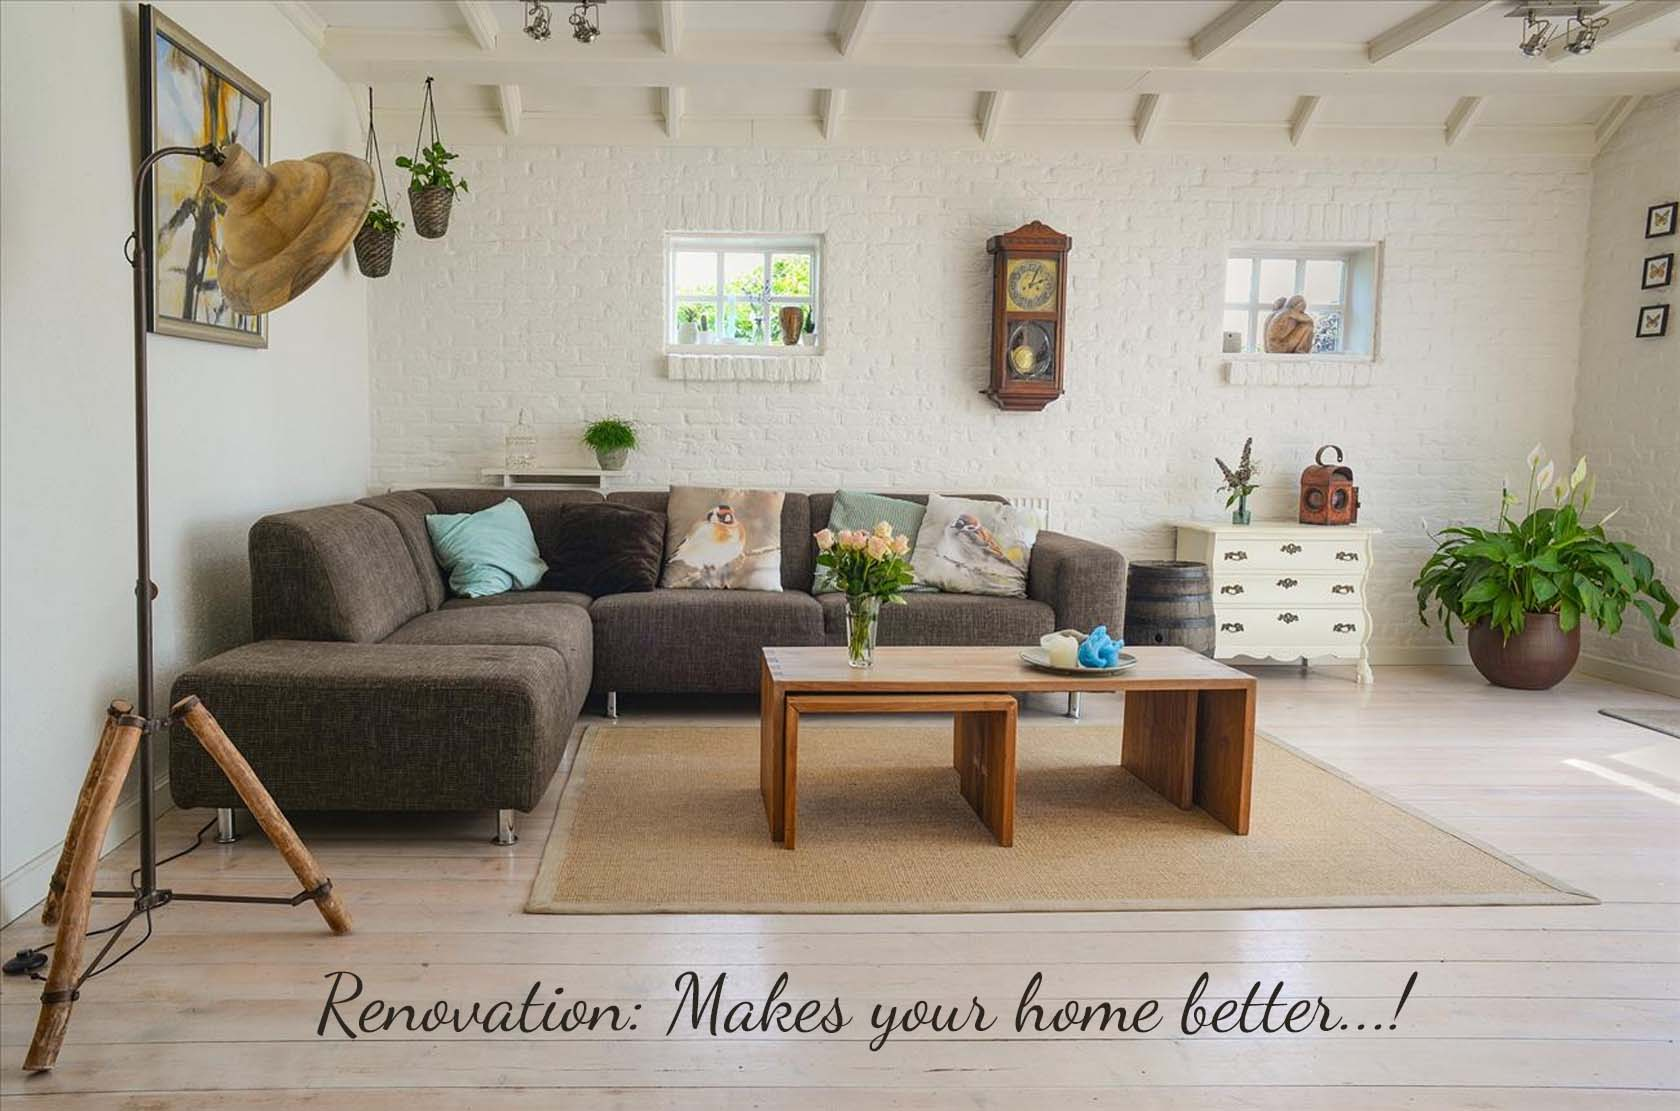 Home Renovation Makes Your Home Better